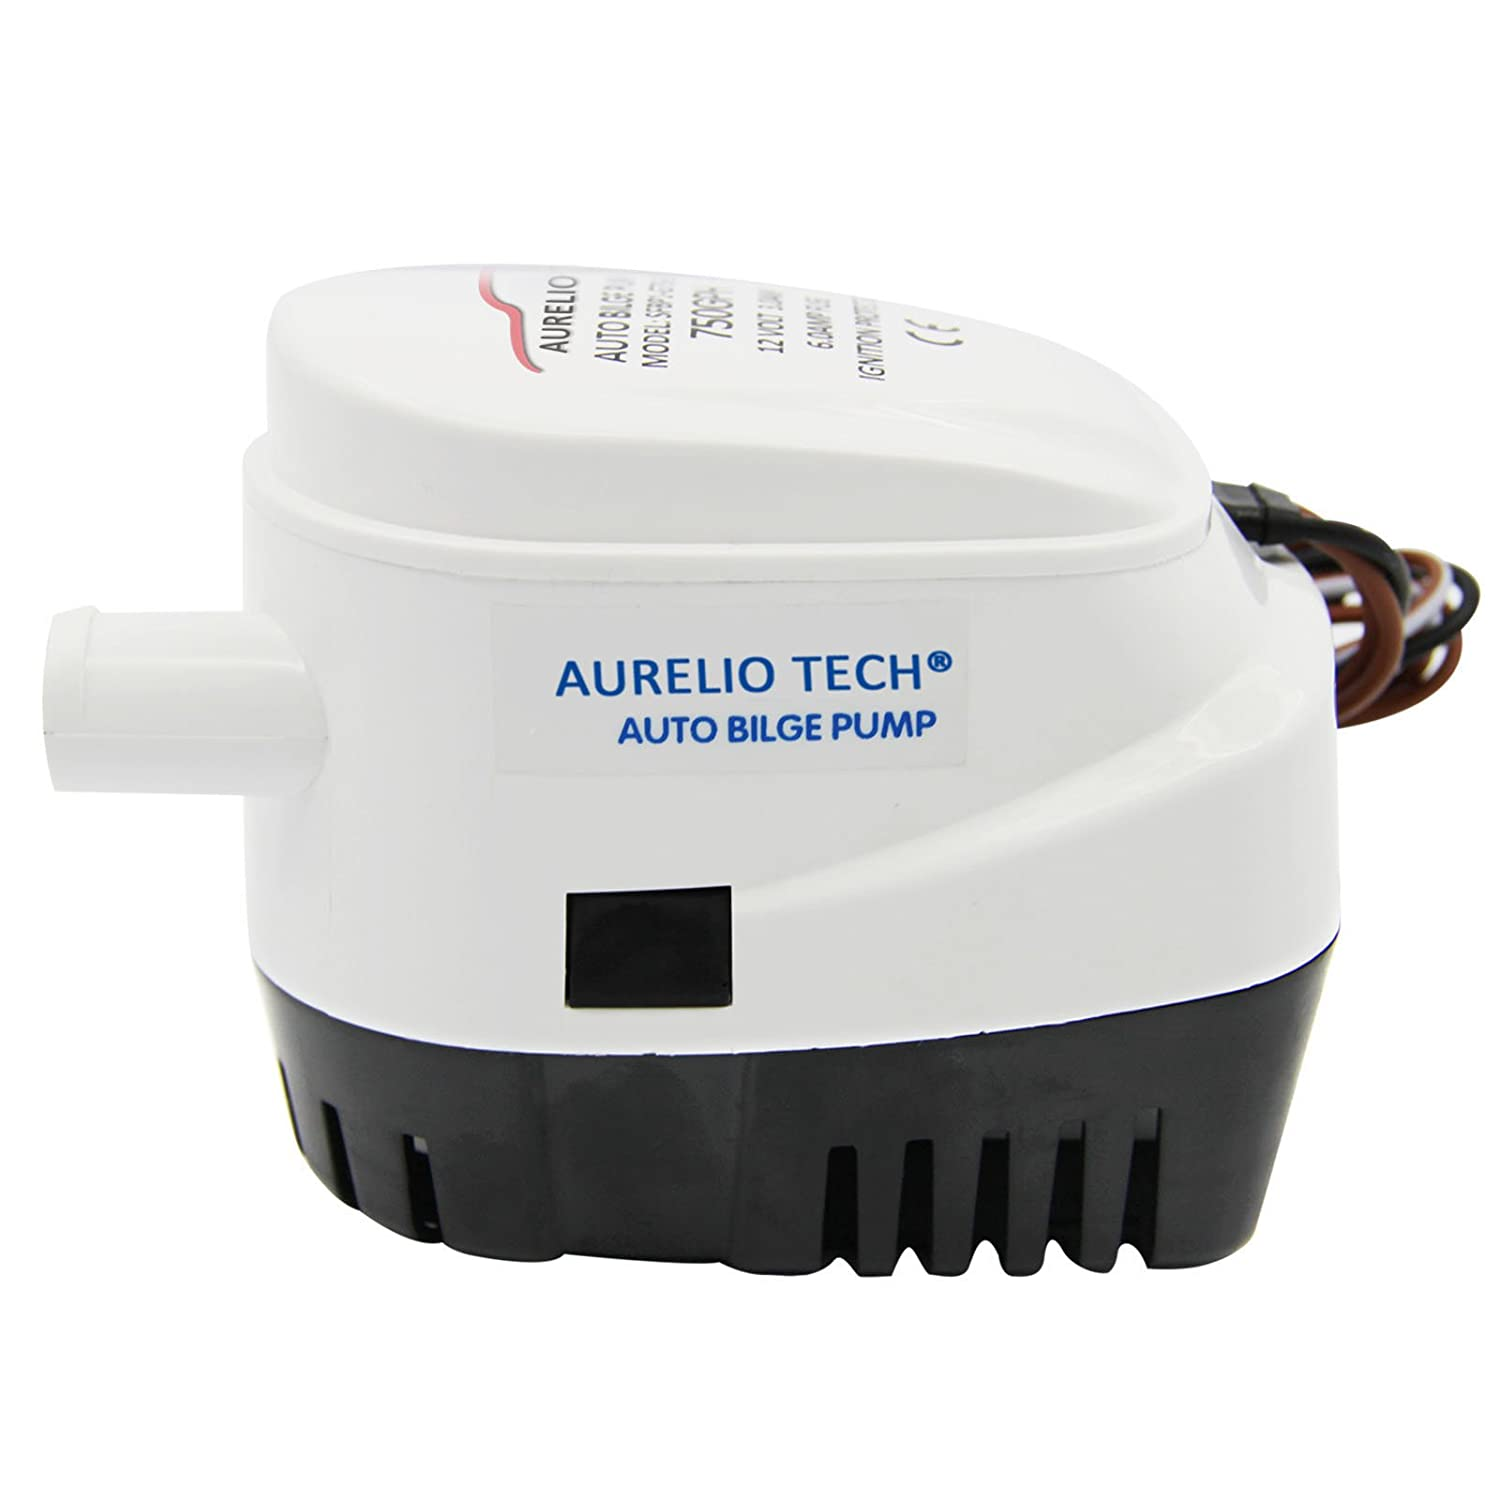 61X30Rmk3NL._SL1500_ amazon com aurelio tech 12v automatic submersible boat bilge attwood sahara bilge pump wiring diagram at bayanpartner.co